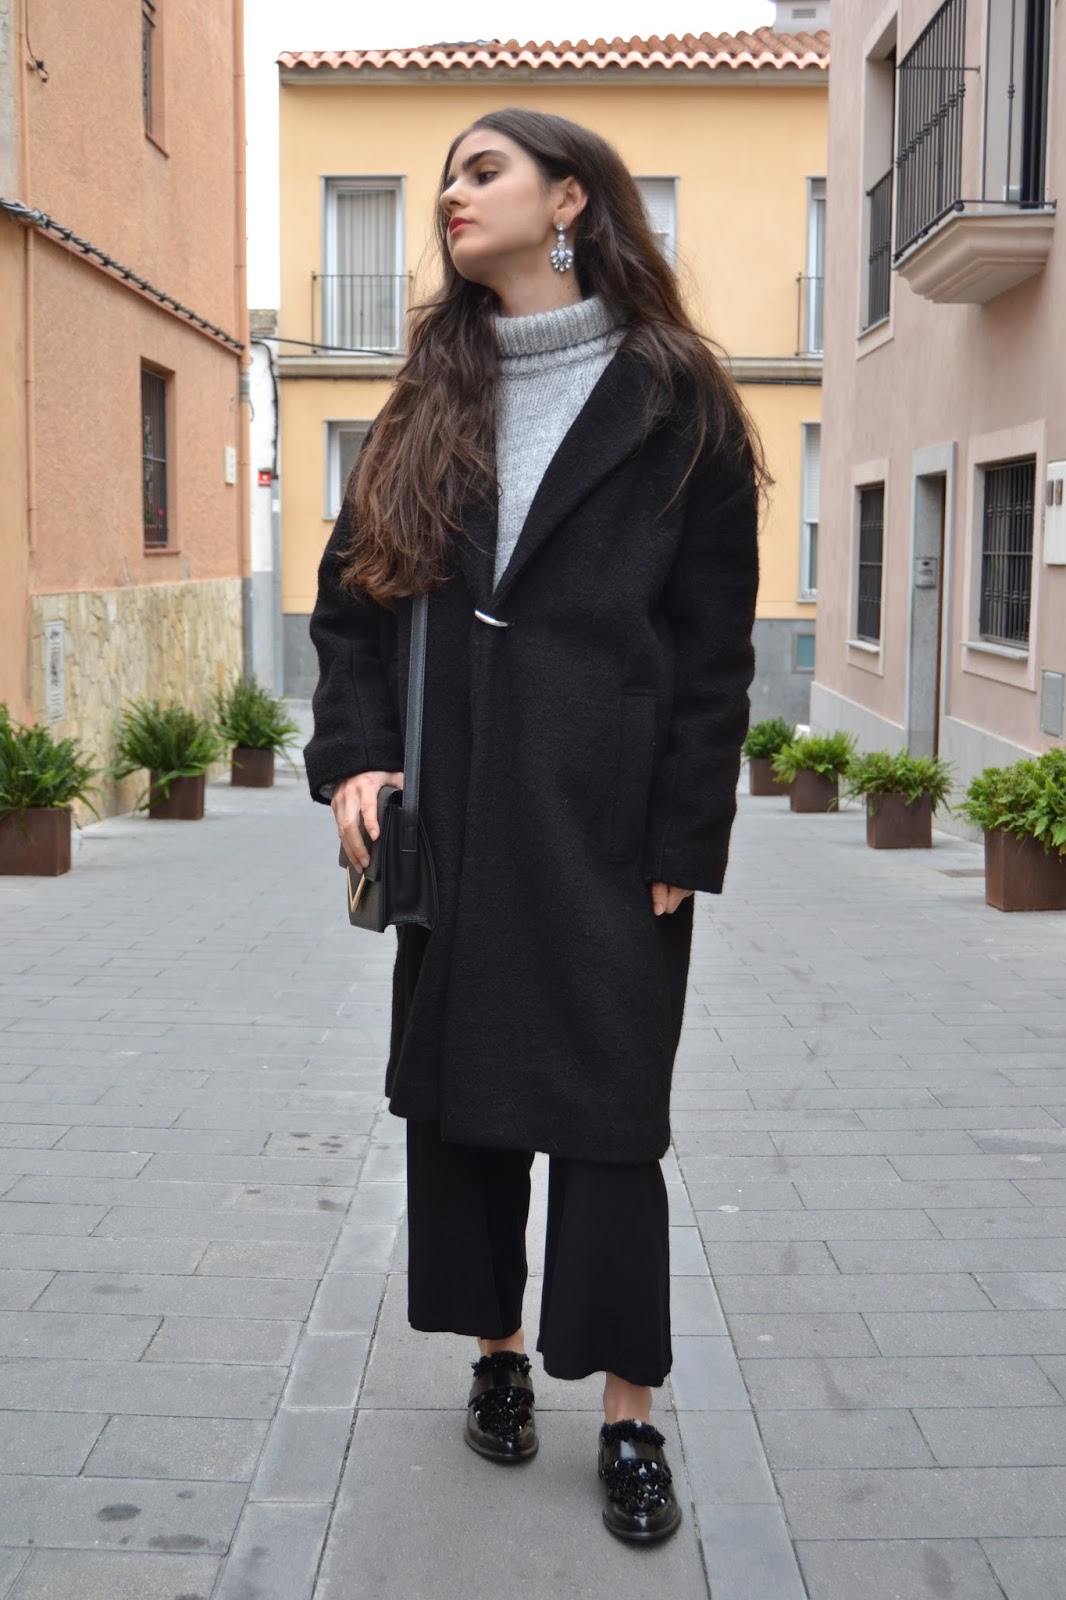 black oversized coat and earrings